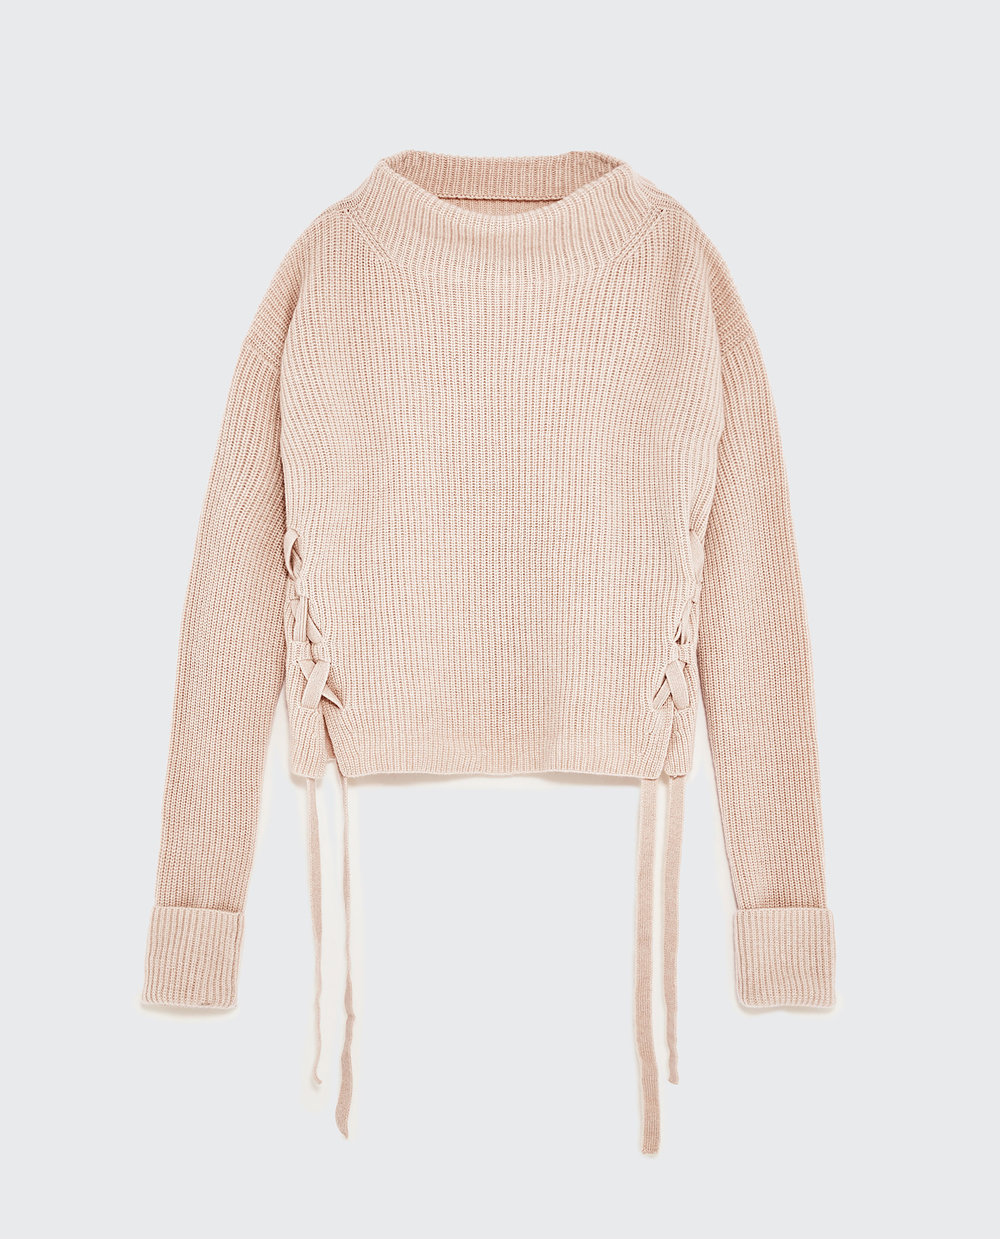 Who says you have to spend thousands of dollars on a chunky cashmere sweater in a beautiful blush shade? Thanks to Zara, you can sport a luxurious pullover for less than $200. We would love to pair this pretty knit with a pleated dove-grey skirt and satin ballerina flats!